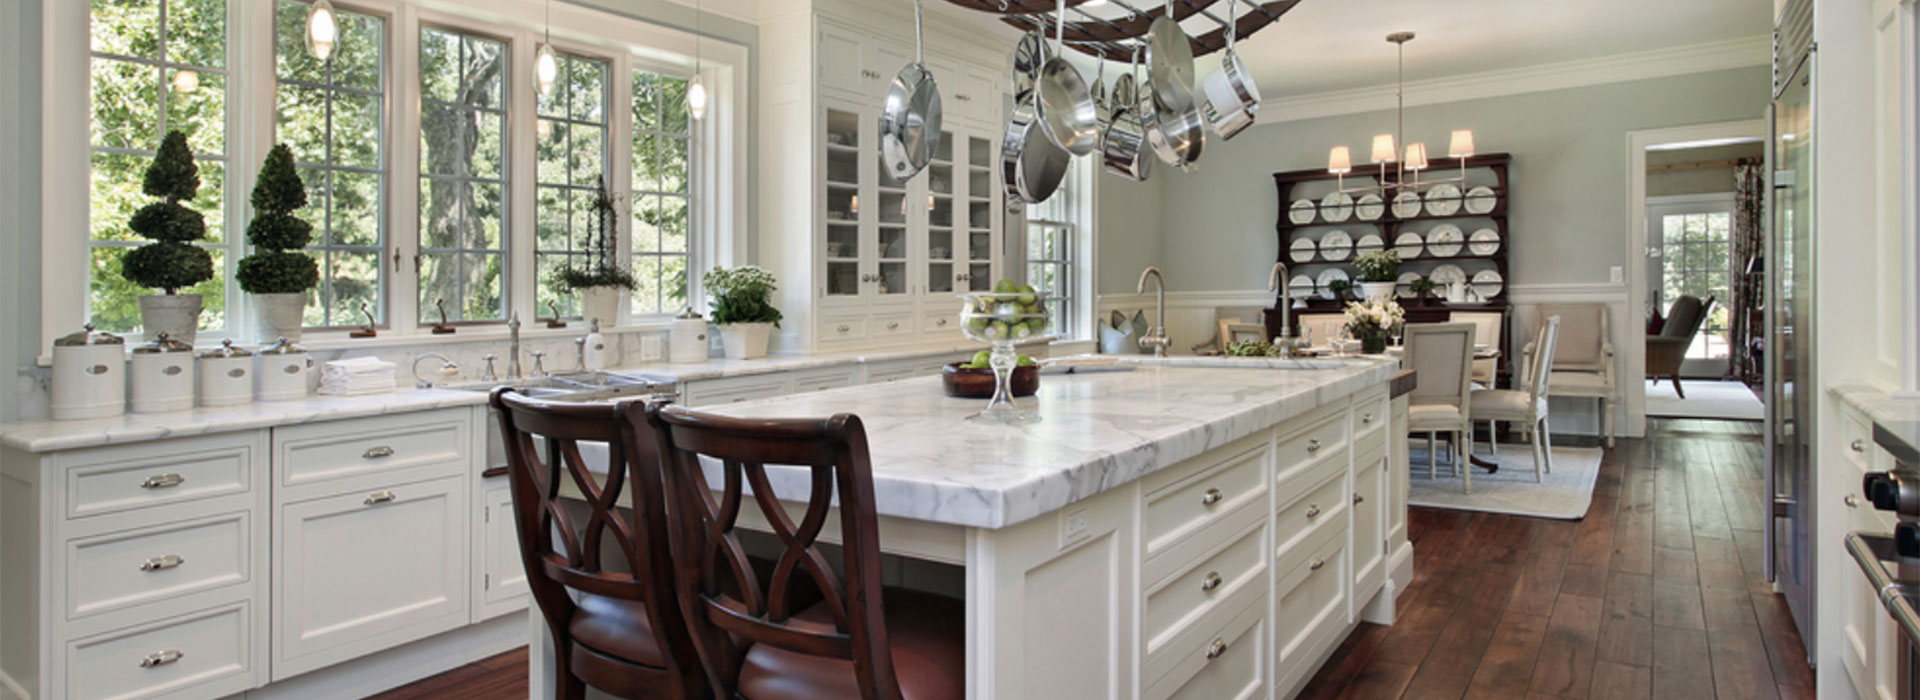 custom_kitchen_remodel